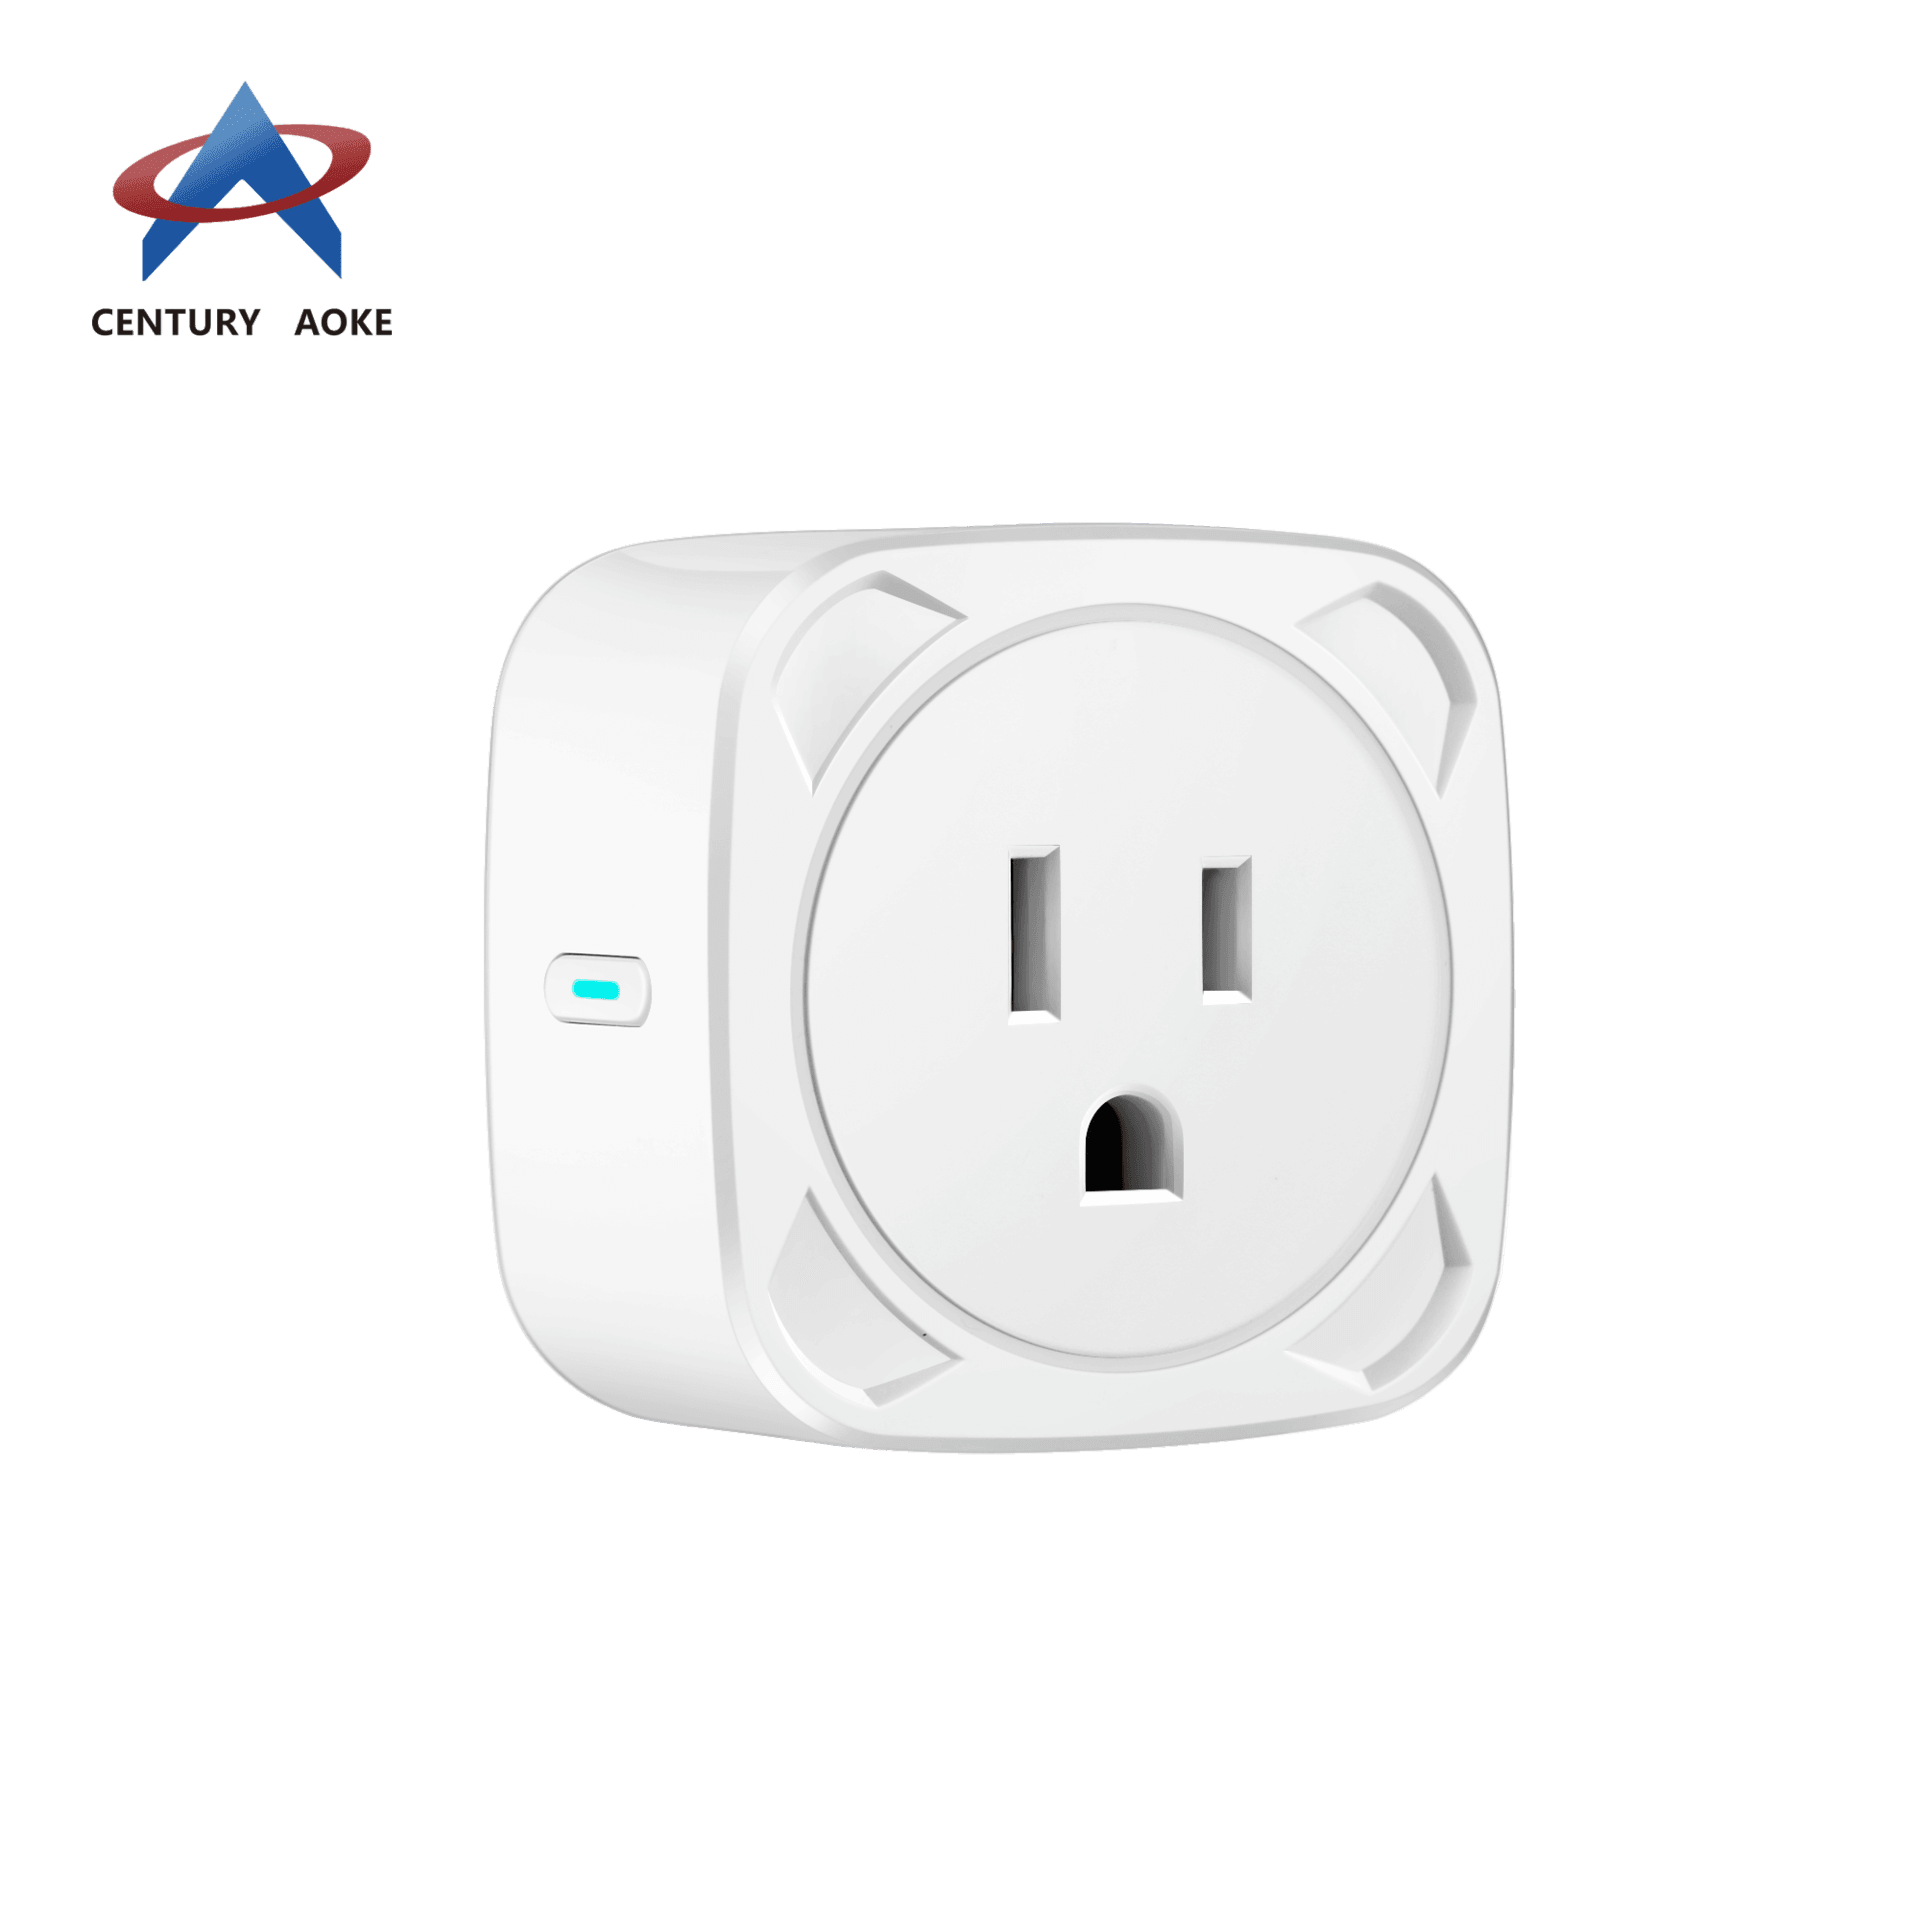 new wifi controlled outlet design for convenience